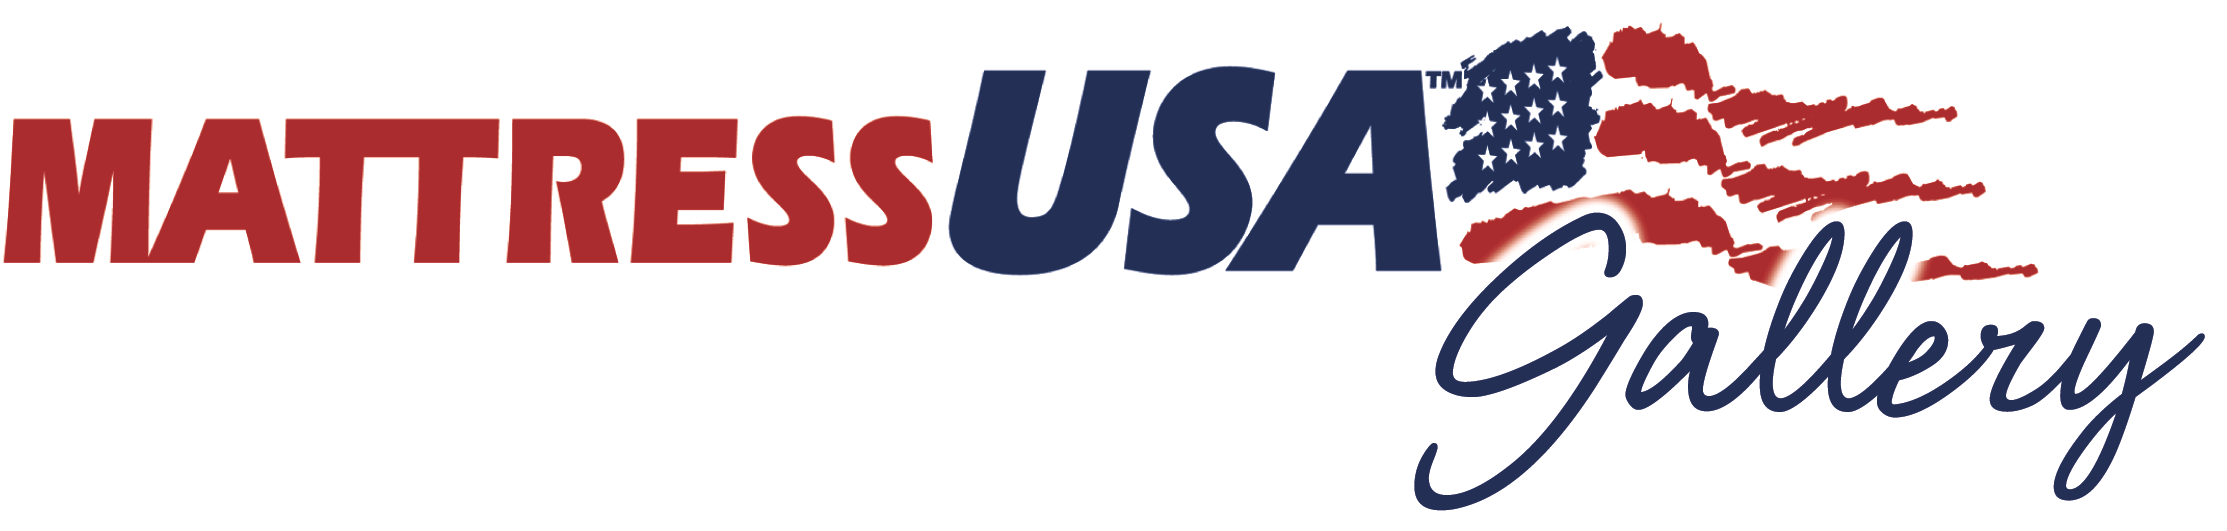 Mattress USA Logo